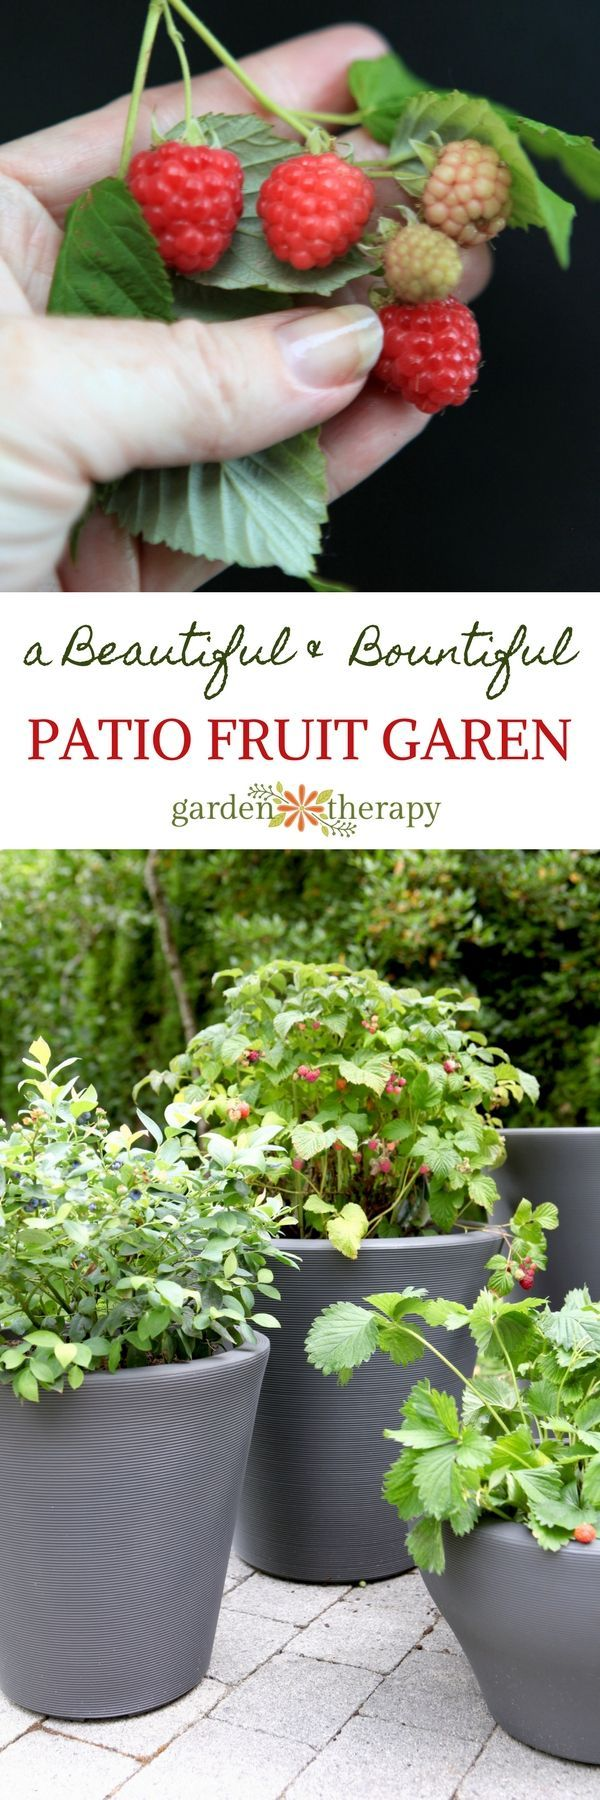 Patio Fruit -Sweet Edibles You Can Grow as a Container Garden. There have been some exciting new fruit plants developed that match aesthetics with function, which means you can get luscious fruit from a plant that's as gorgeous as it is useful. Raspberries, blackberries, blueberries, strawberries, and even fruit trees can sweeten up a small space. With these pretty plants and stylish containers, you can have a patio fruit garden that's not only yummy, but decorative too.